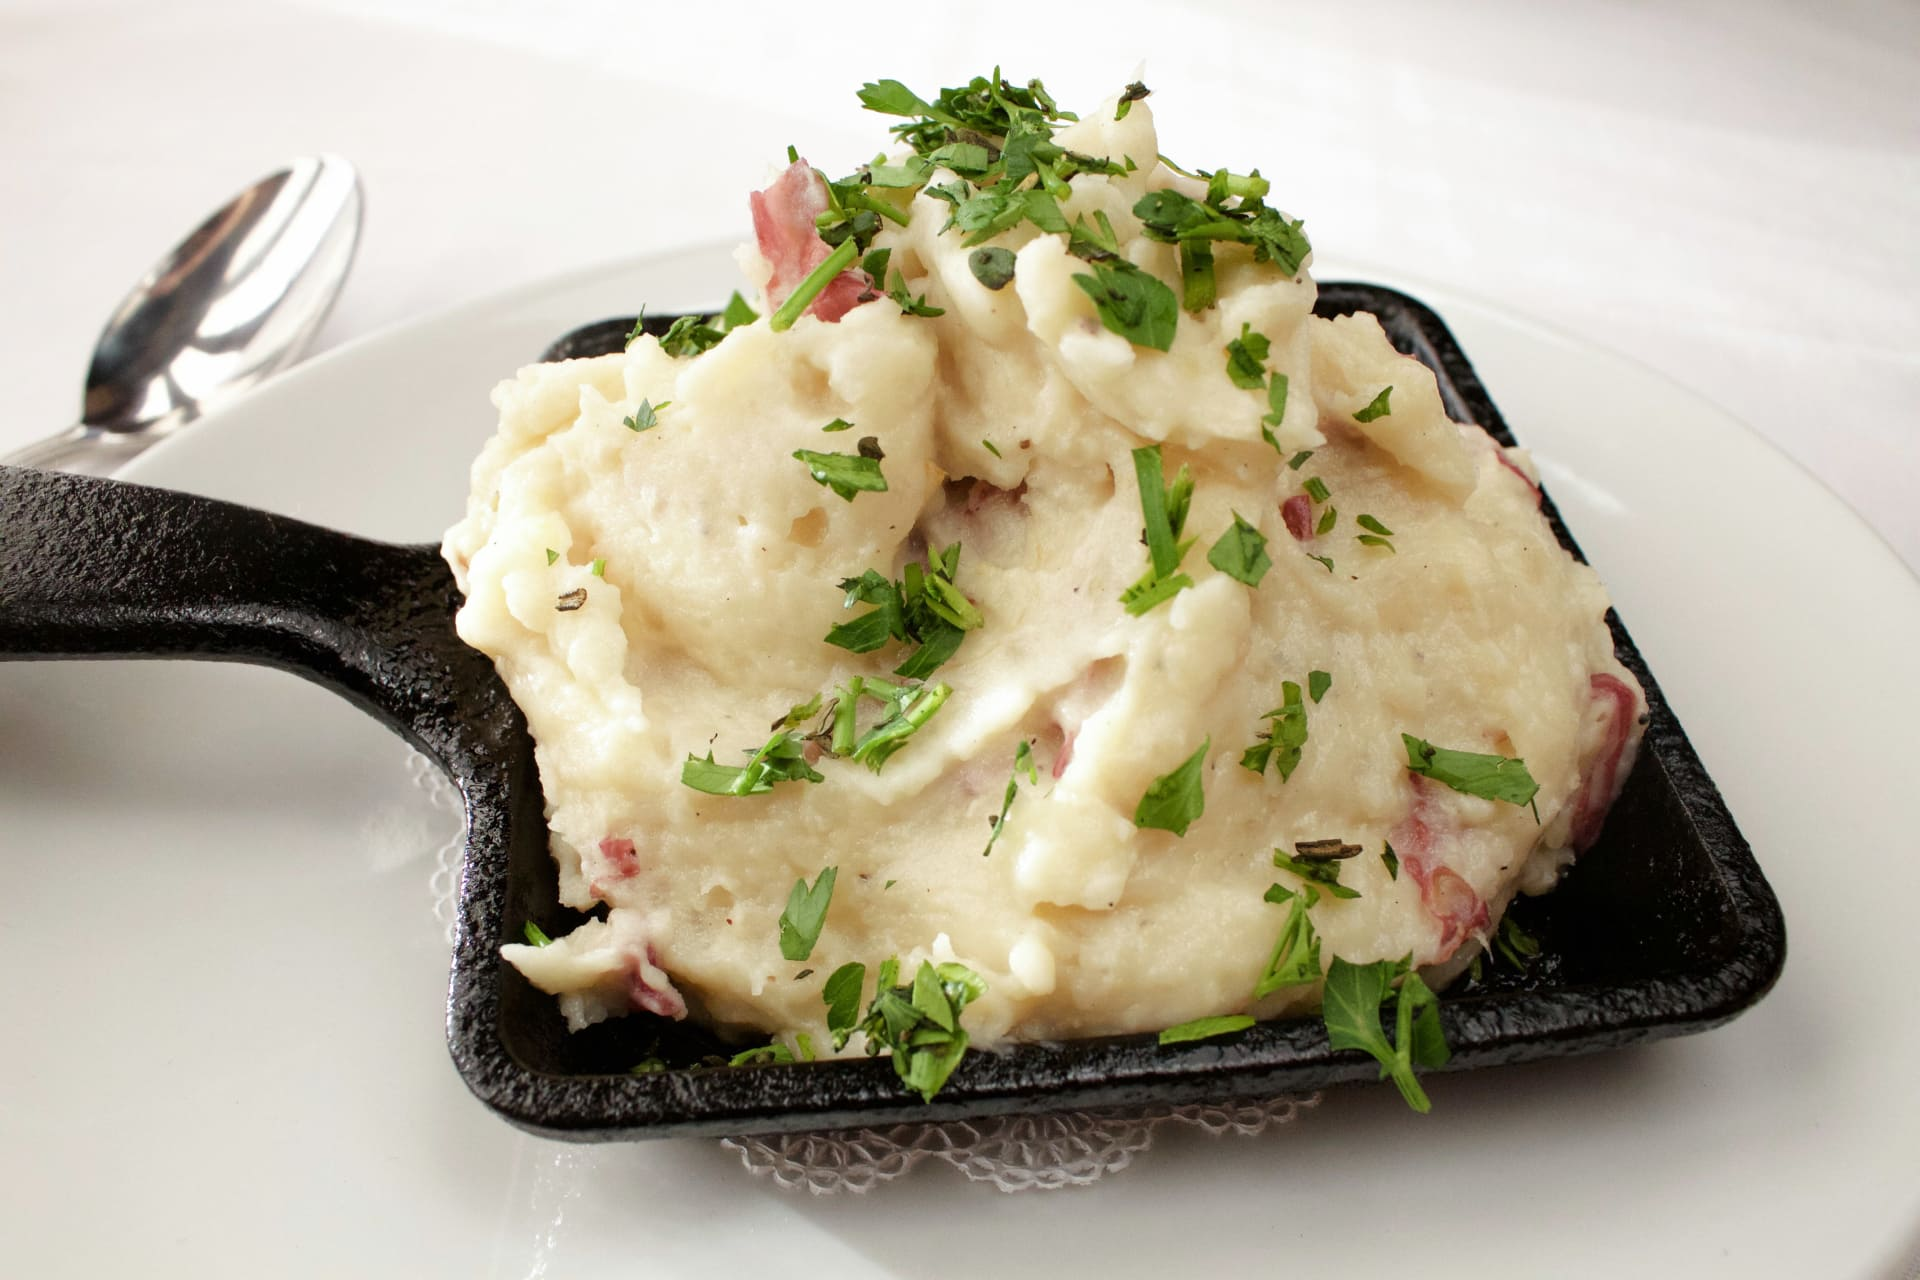 Garlic & Creme Fraiche Mashed Red Potatoes